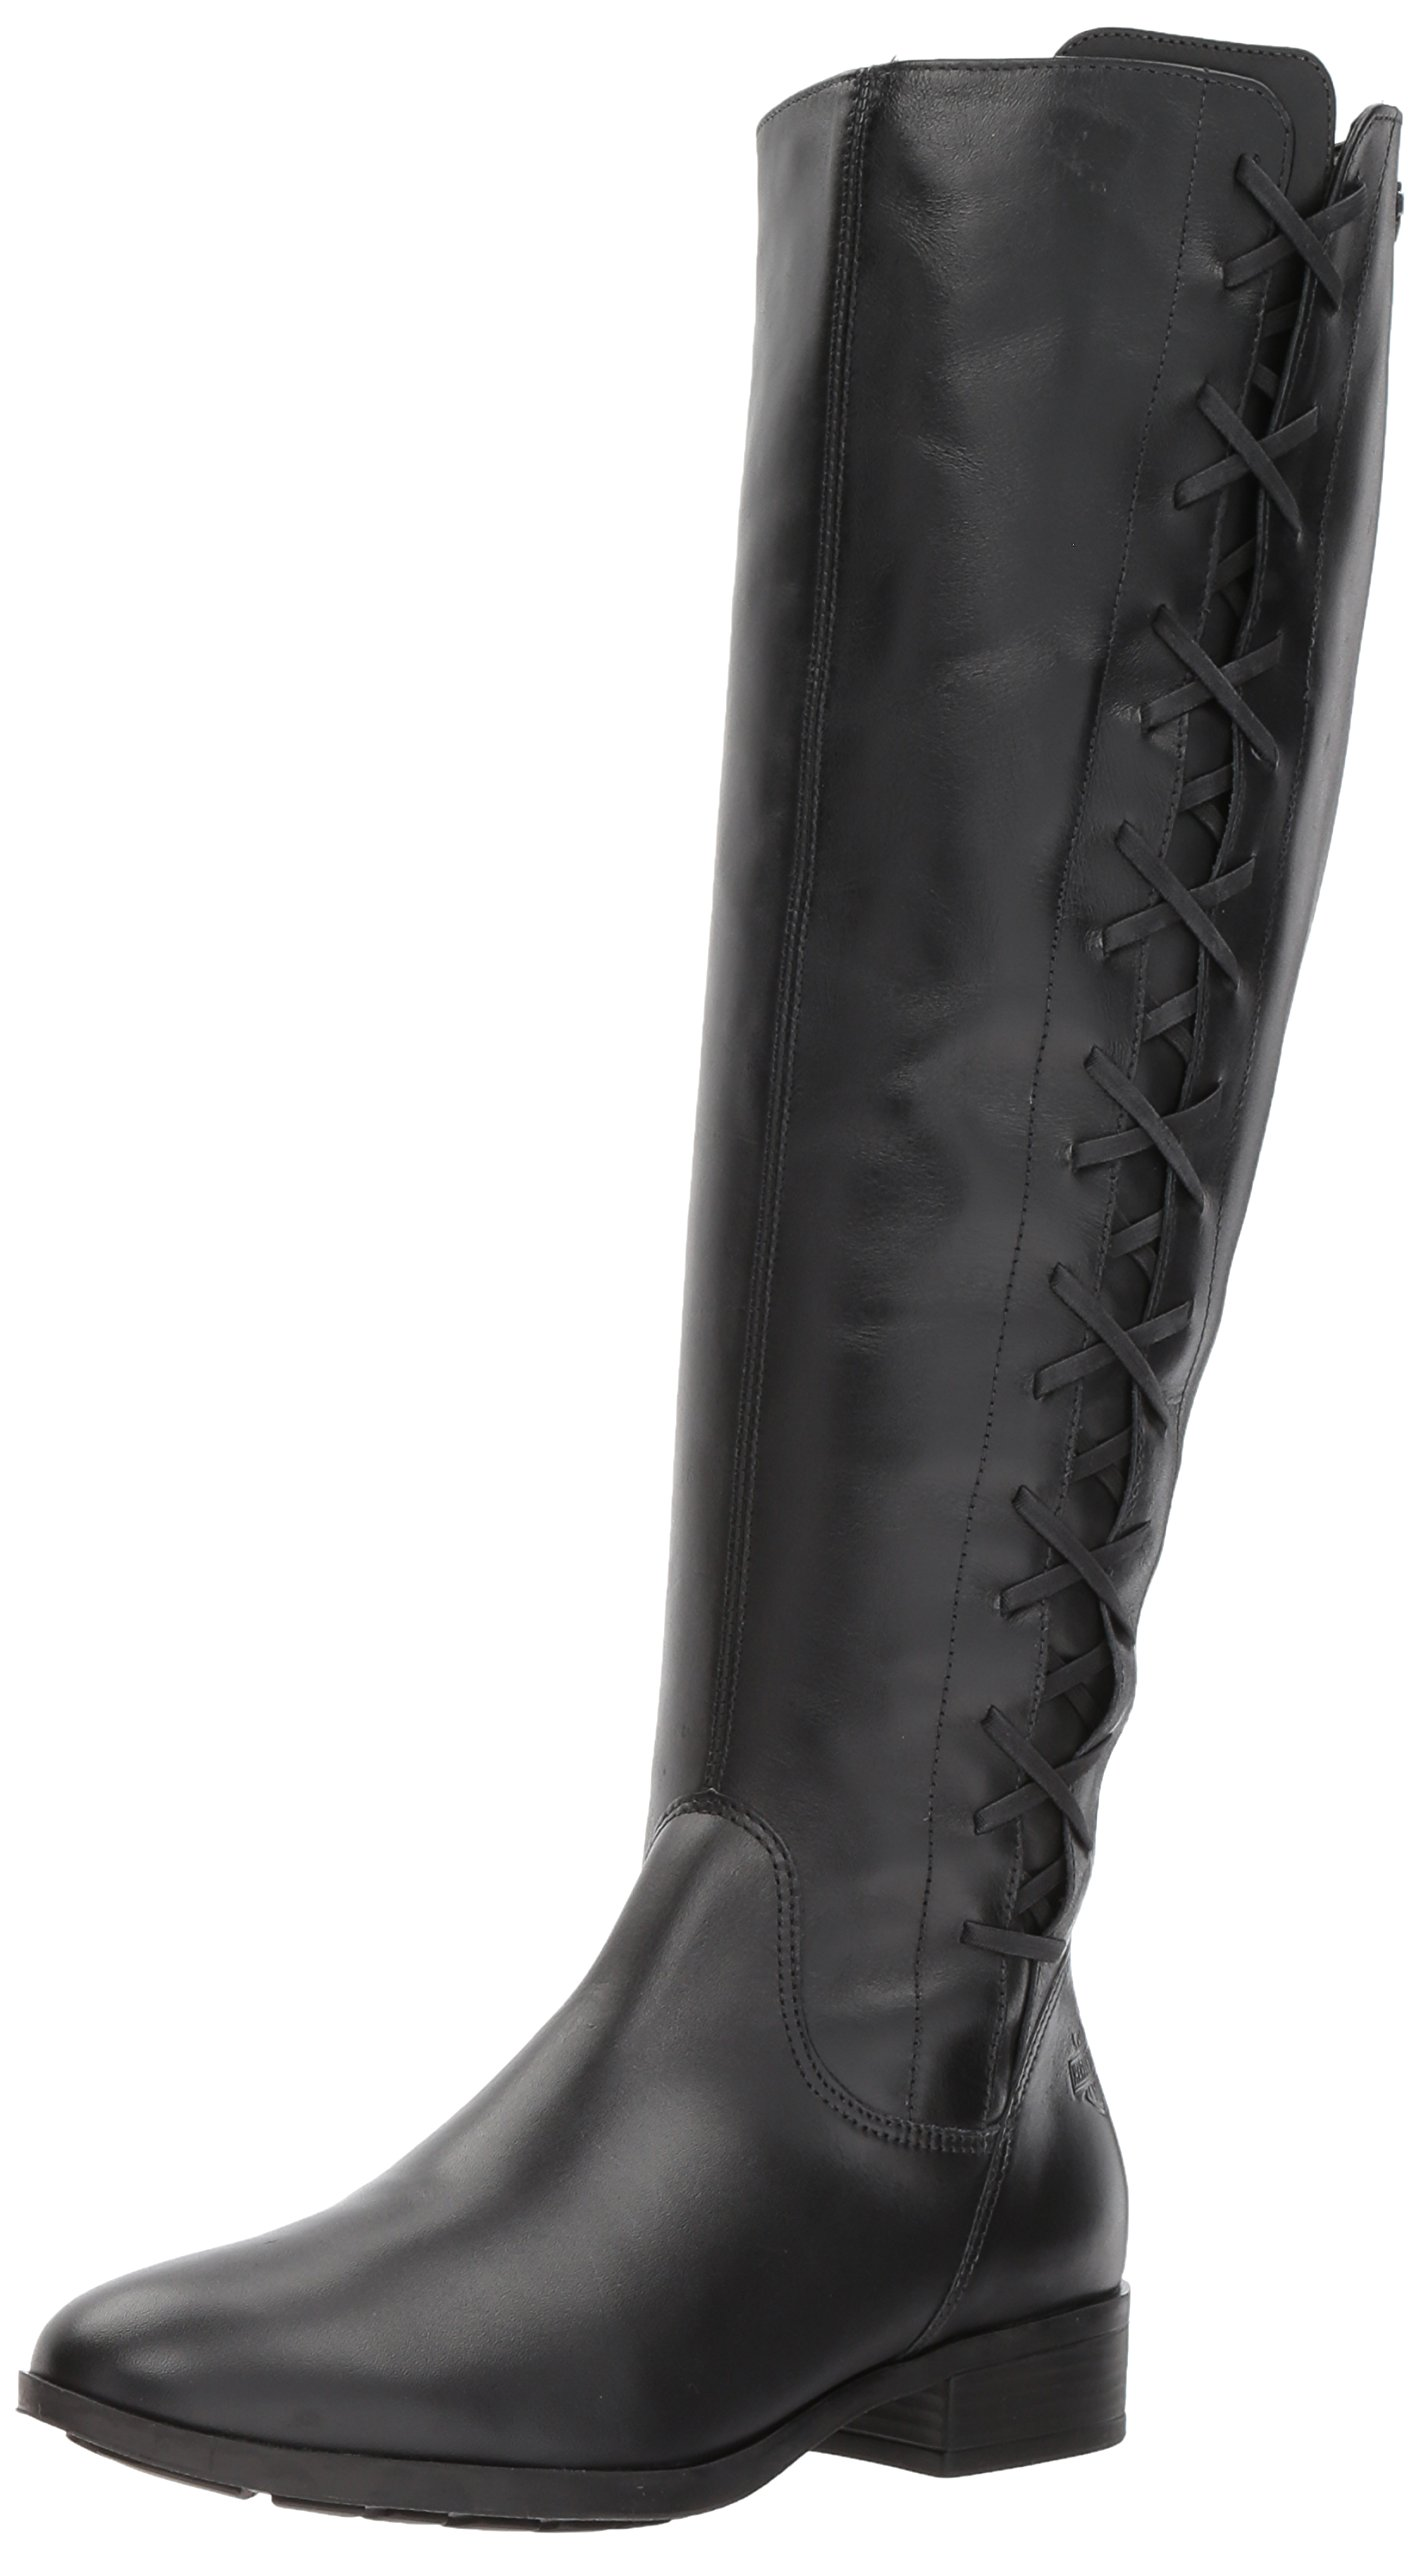 Harley-Davidson Women's Carrwood Work Boot, Black, 6.5 M US